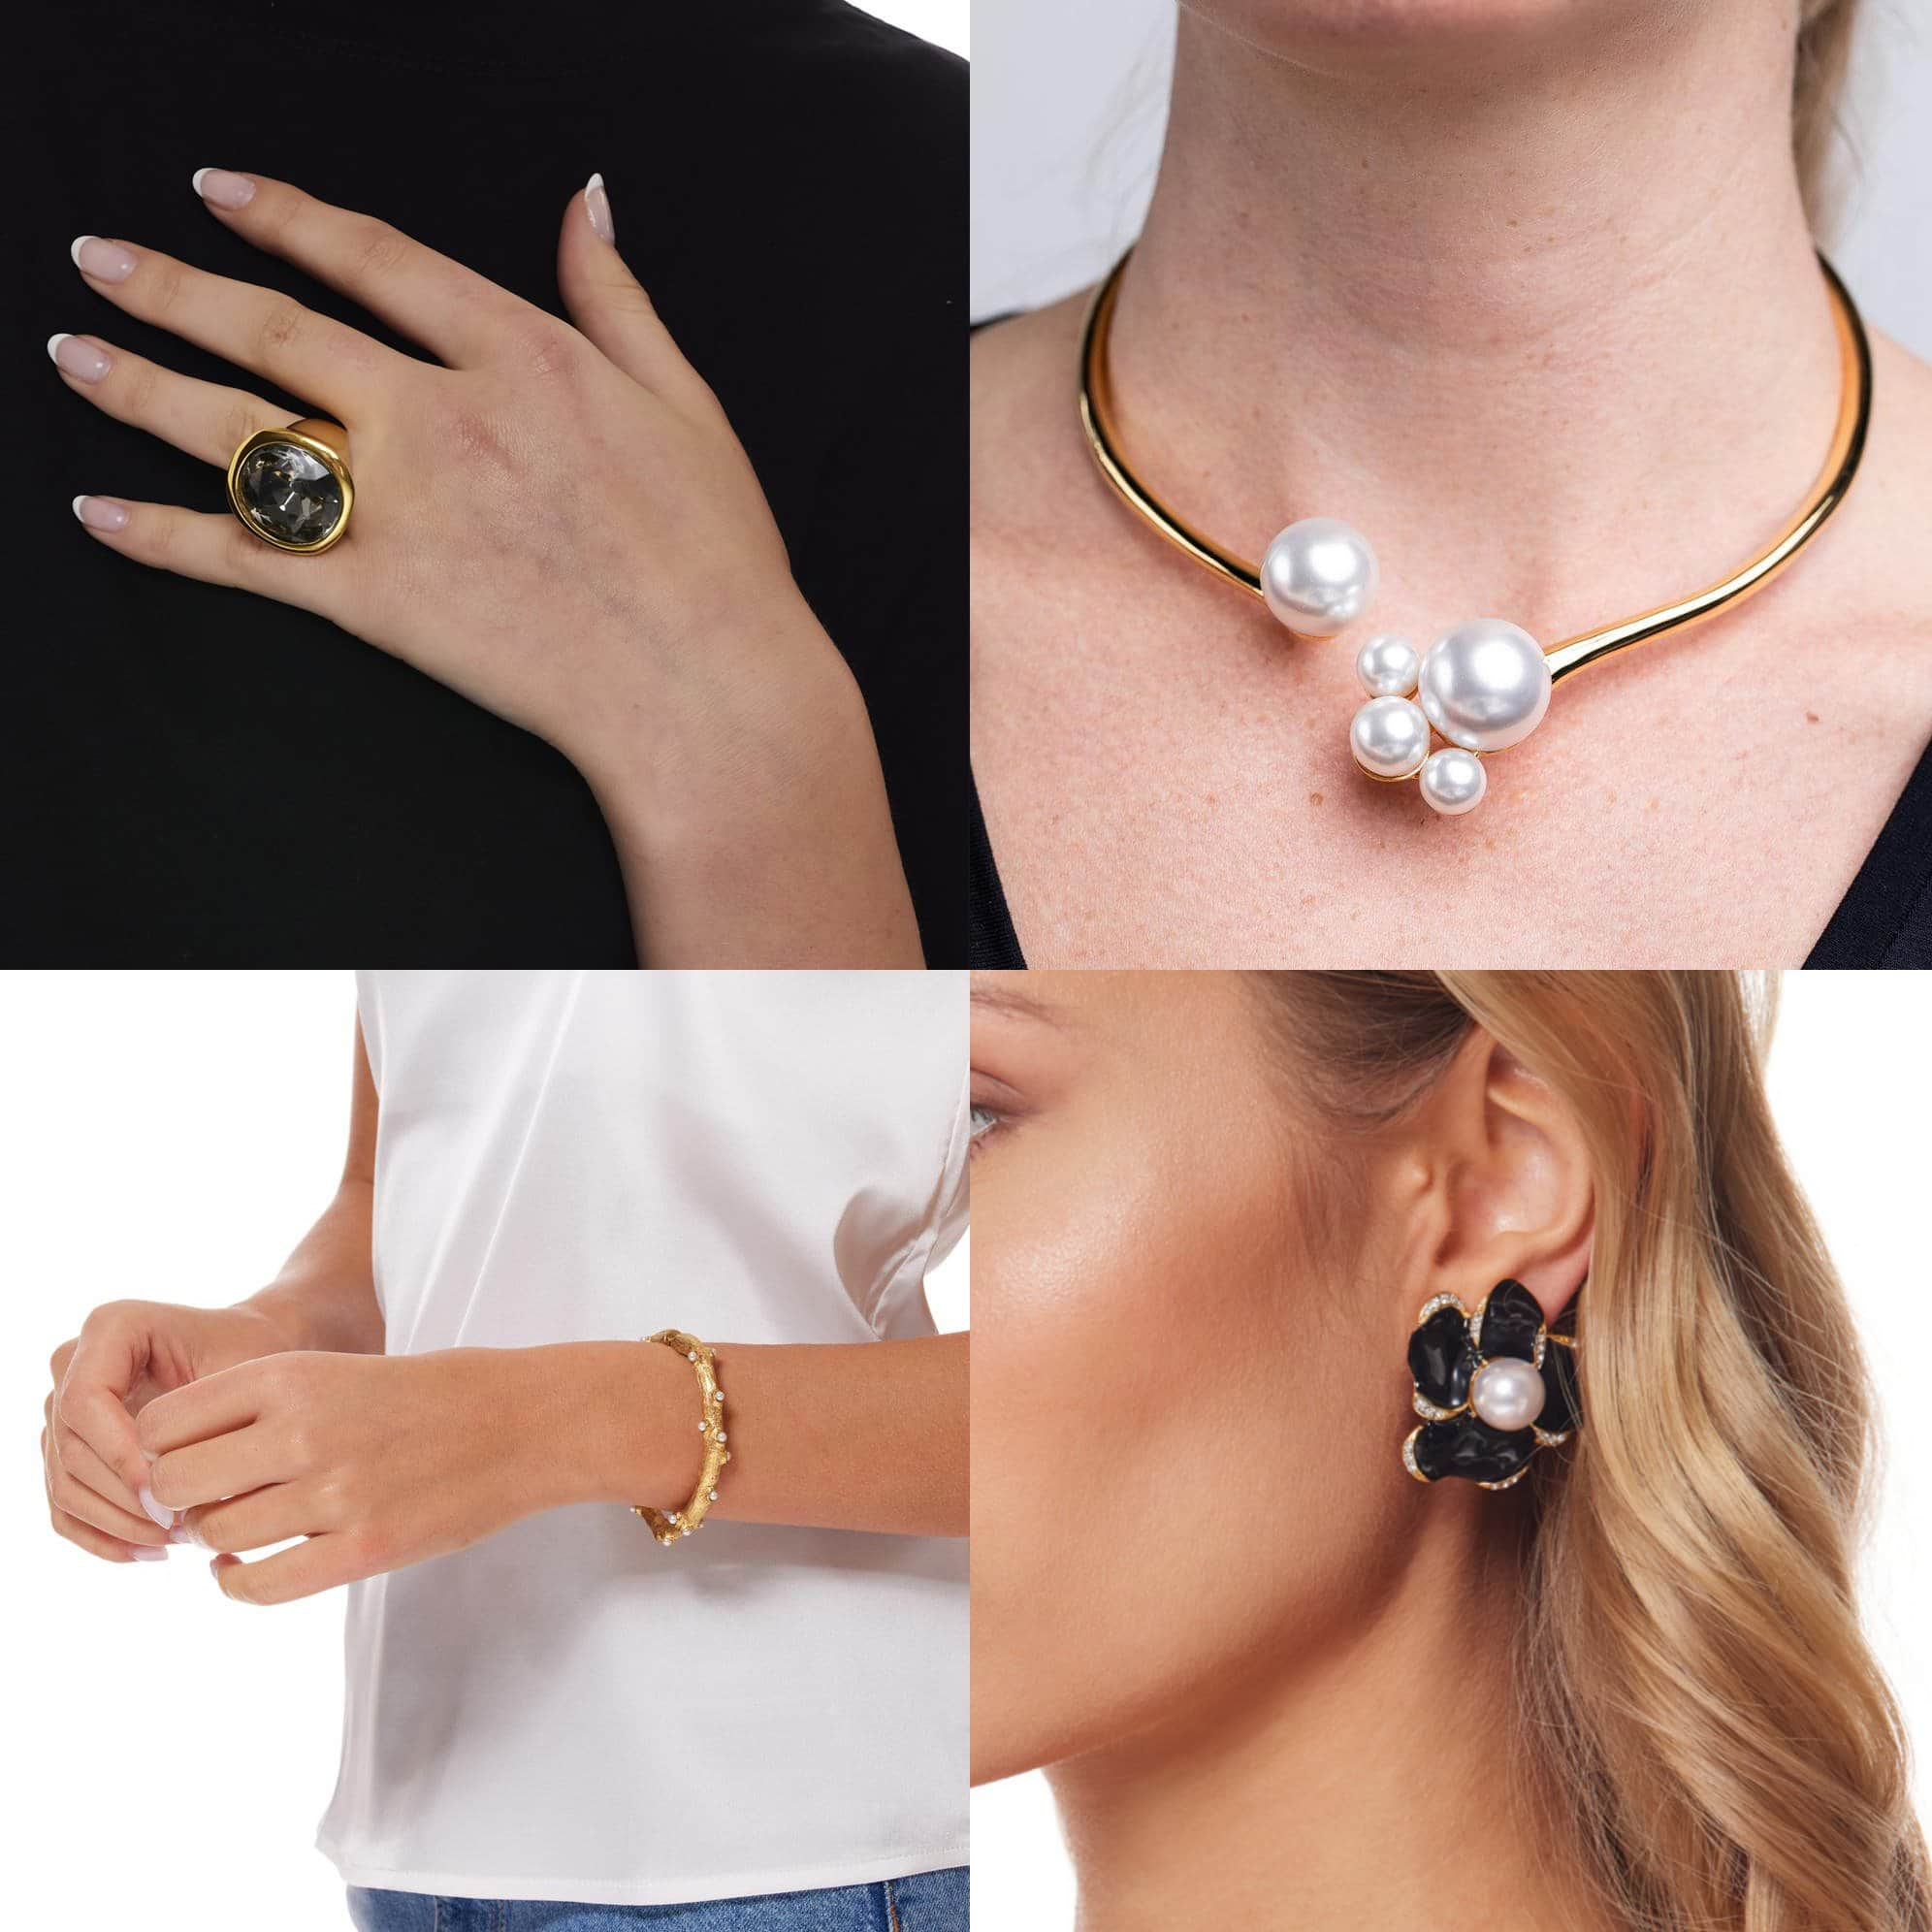 Kenneth Jay Lane Black Diamond Headlight ring, $95; Kenneth Jay Lane Pearl Cluster bib necklace, $235; Kenneth Jay Lane Gold Hinged Coral Shaped Bracelet with Pearl Dots, $165; Gold and Rhinestone Flower with Black Enamel Petals Clip earring, $165